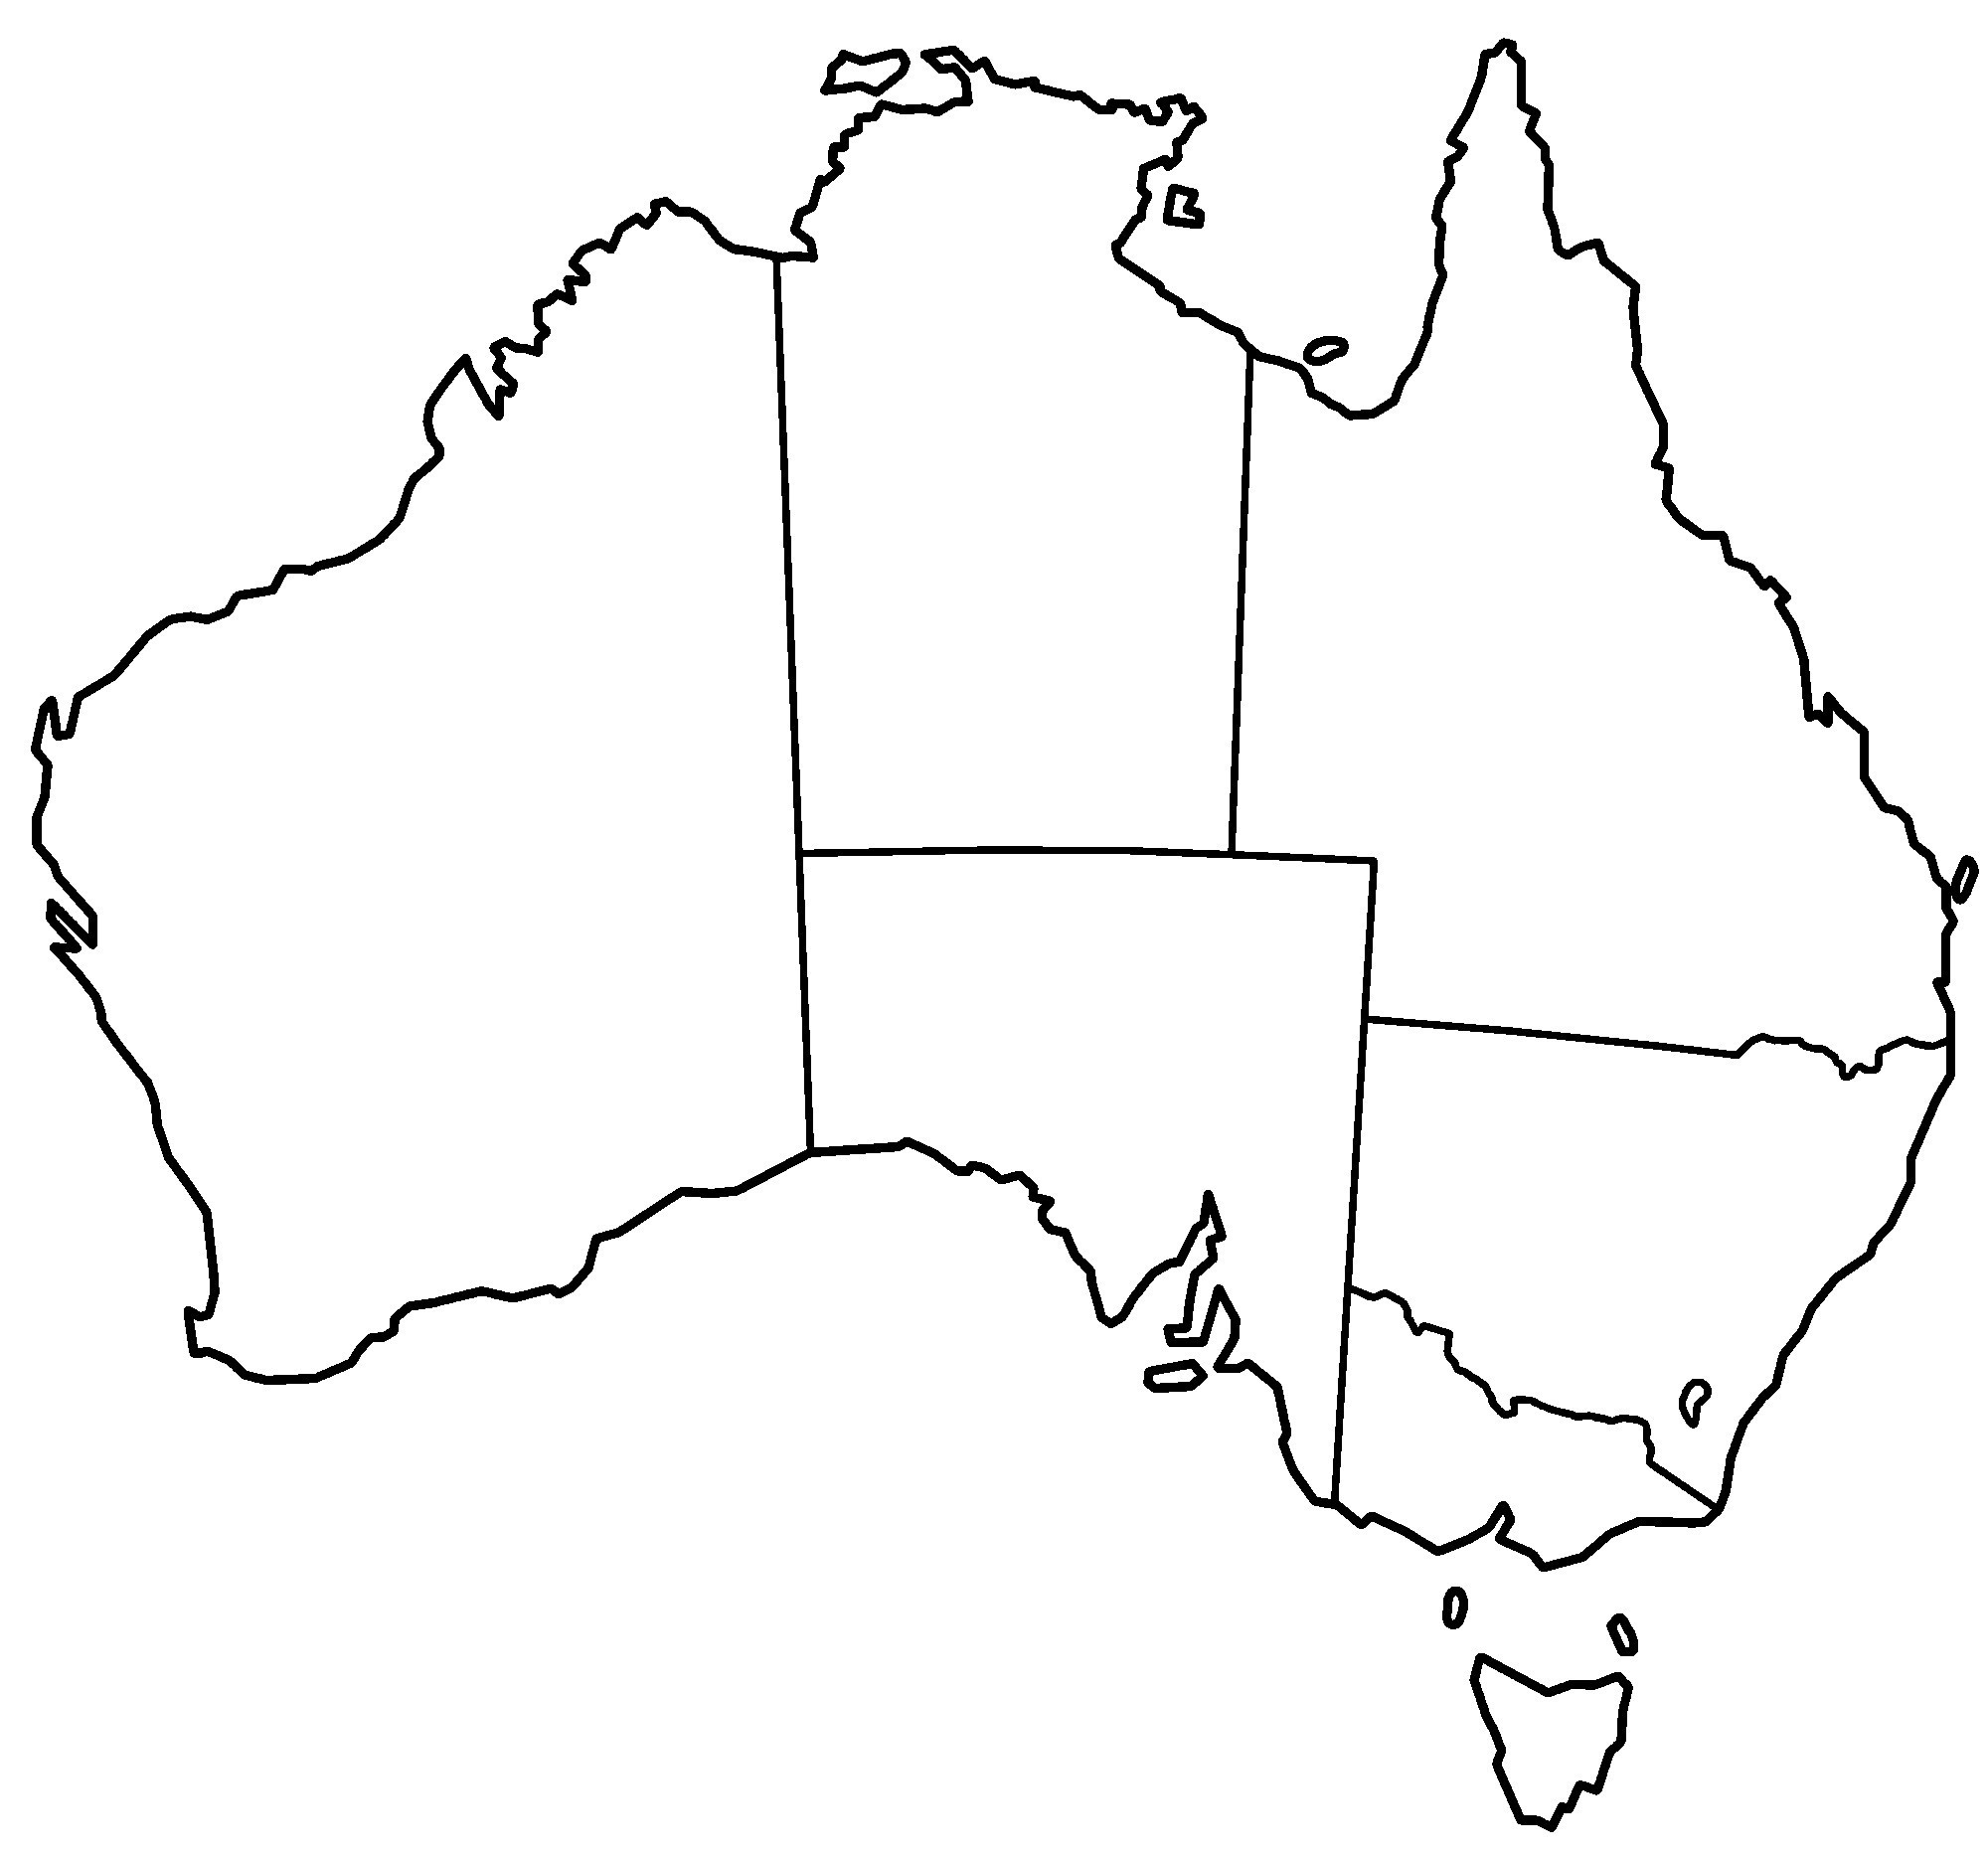 2000x1870 australia map black white unique map template unique black